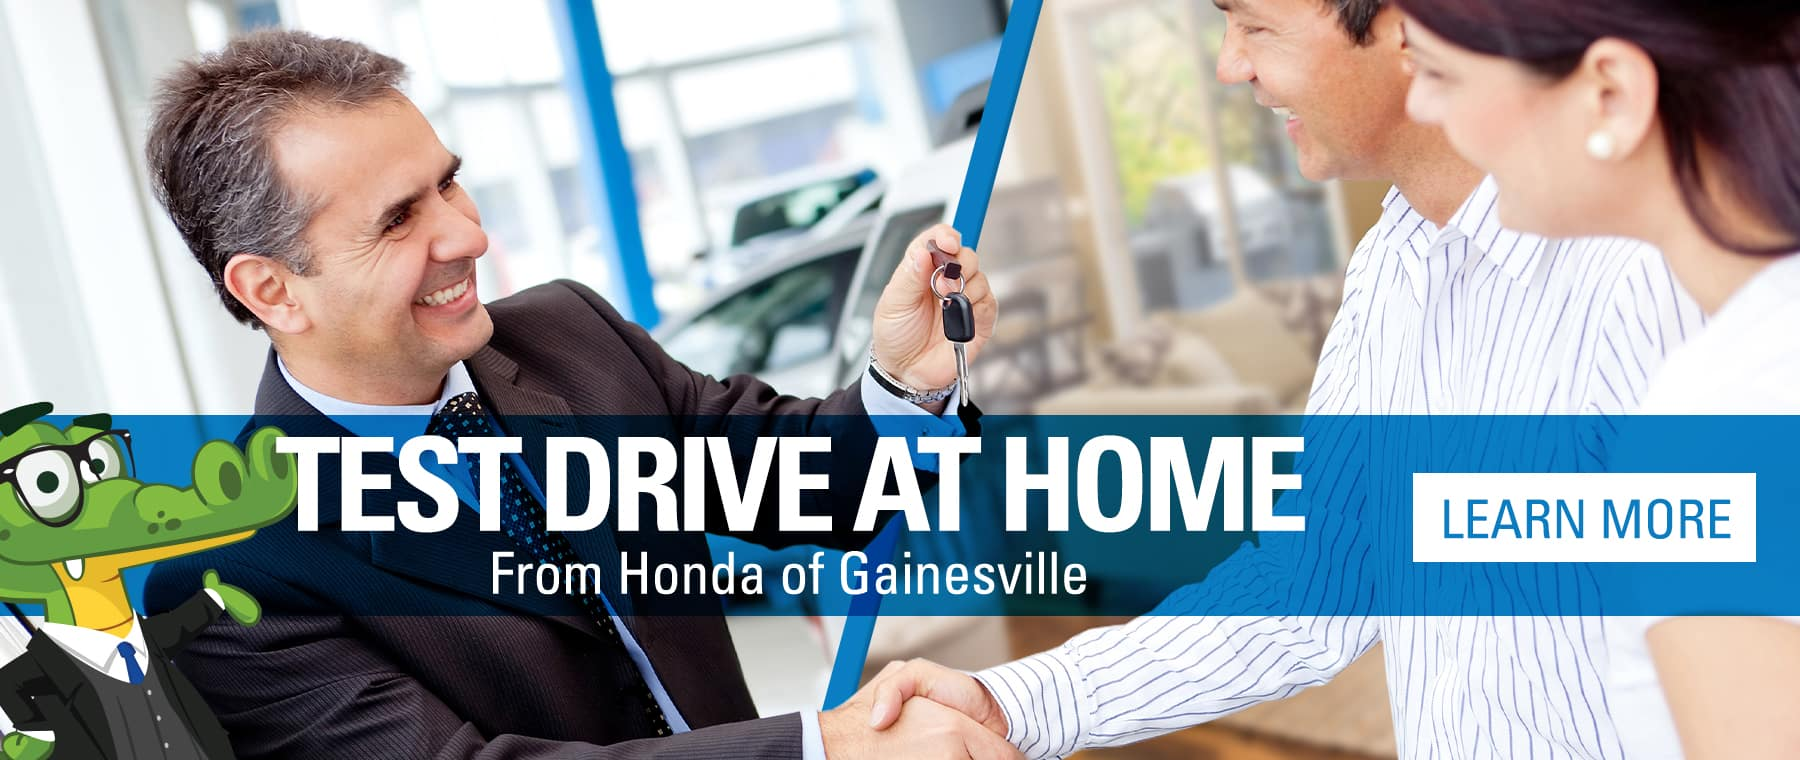 Test Drive At Home From Honda of Gainesville